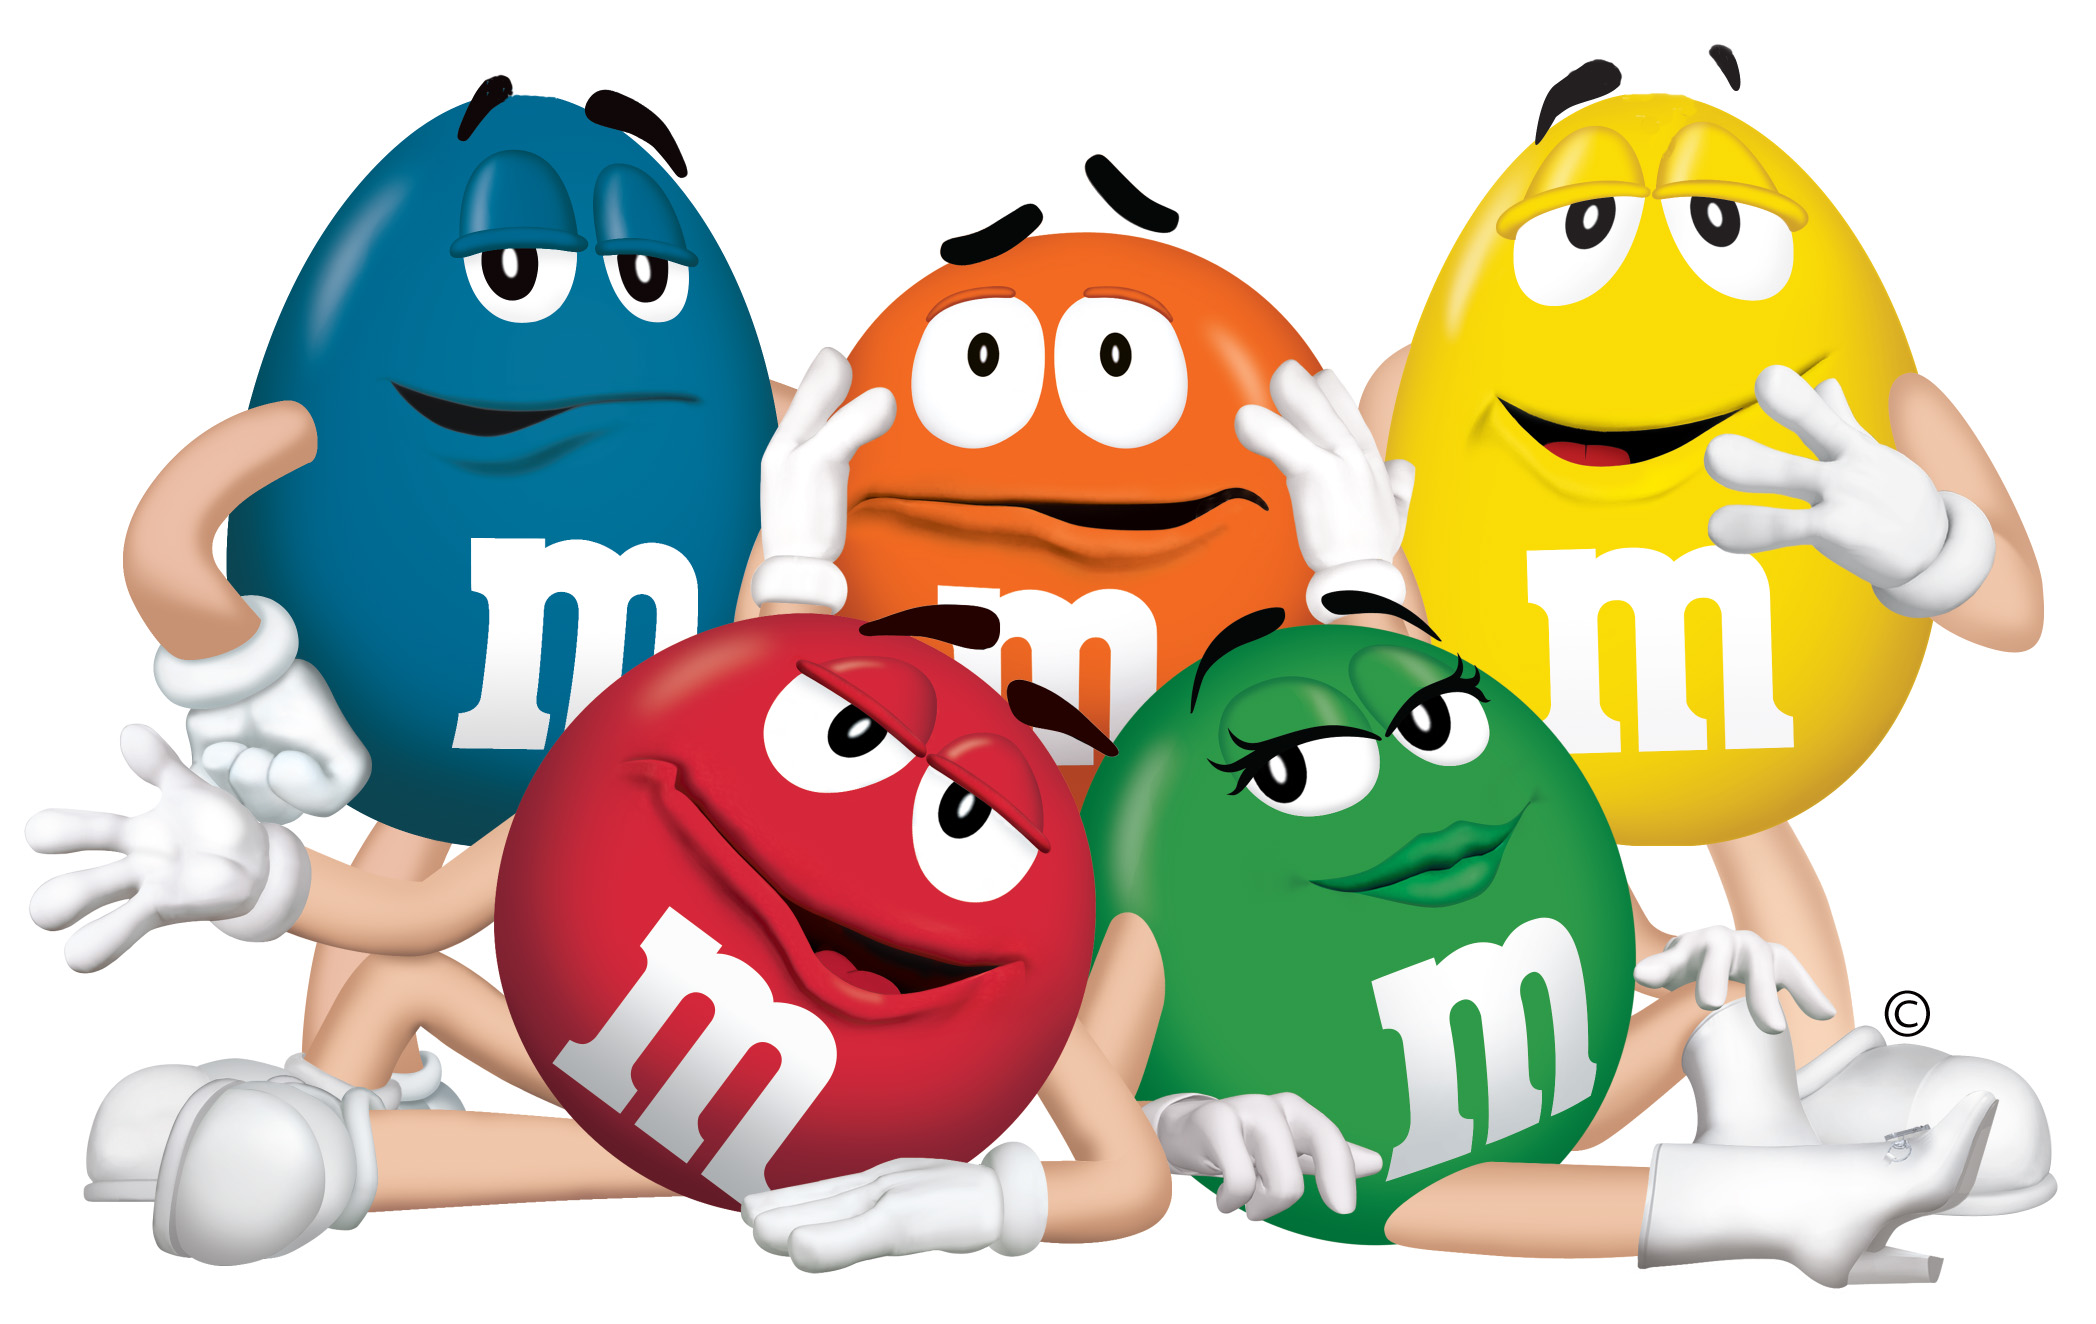 Google-Image-Result-for-http-www-prosportstickers-com-product-images-q-m-m-candy-characters-sticke-wallpaper-wp5405345